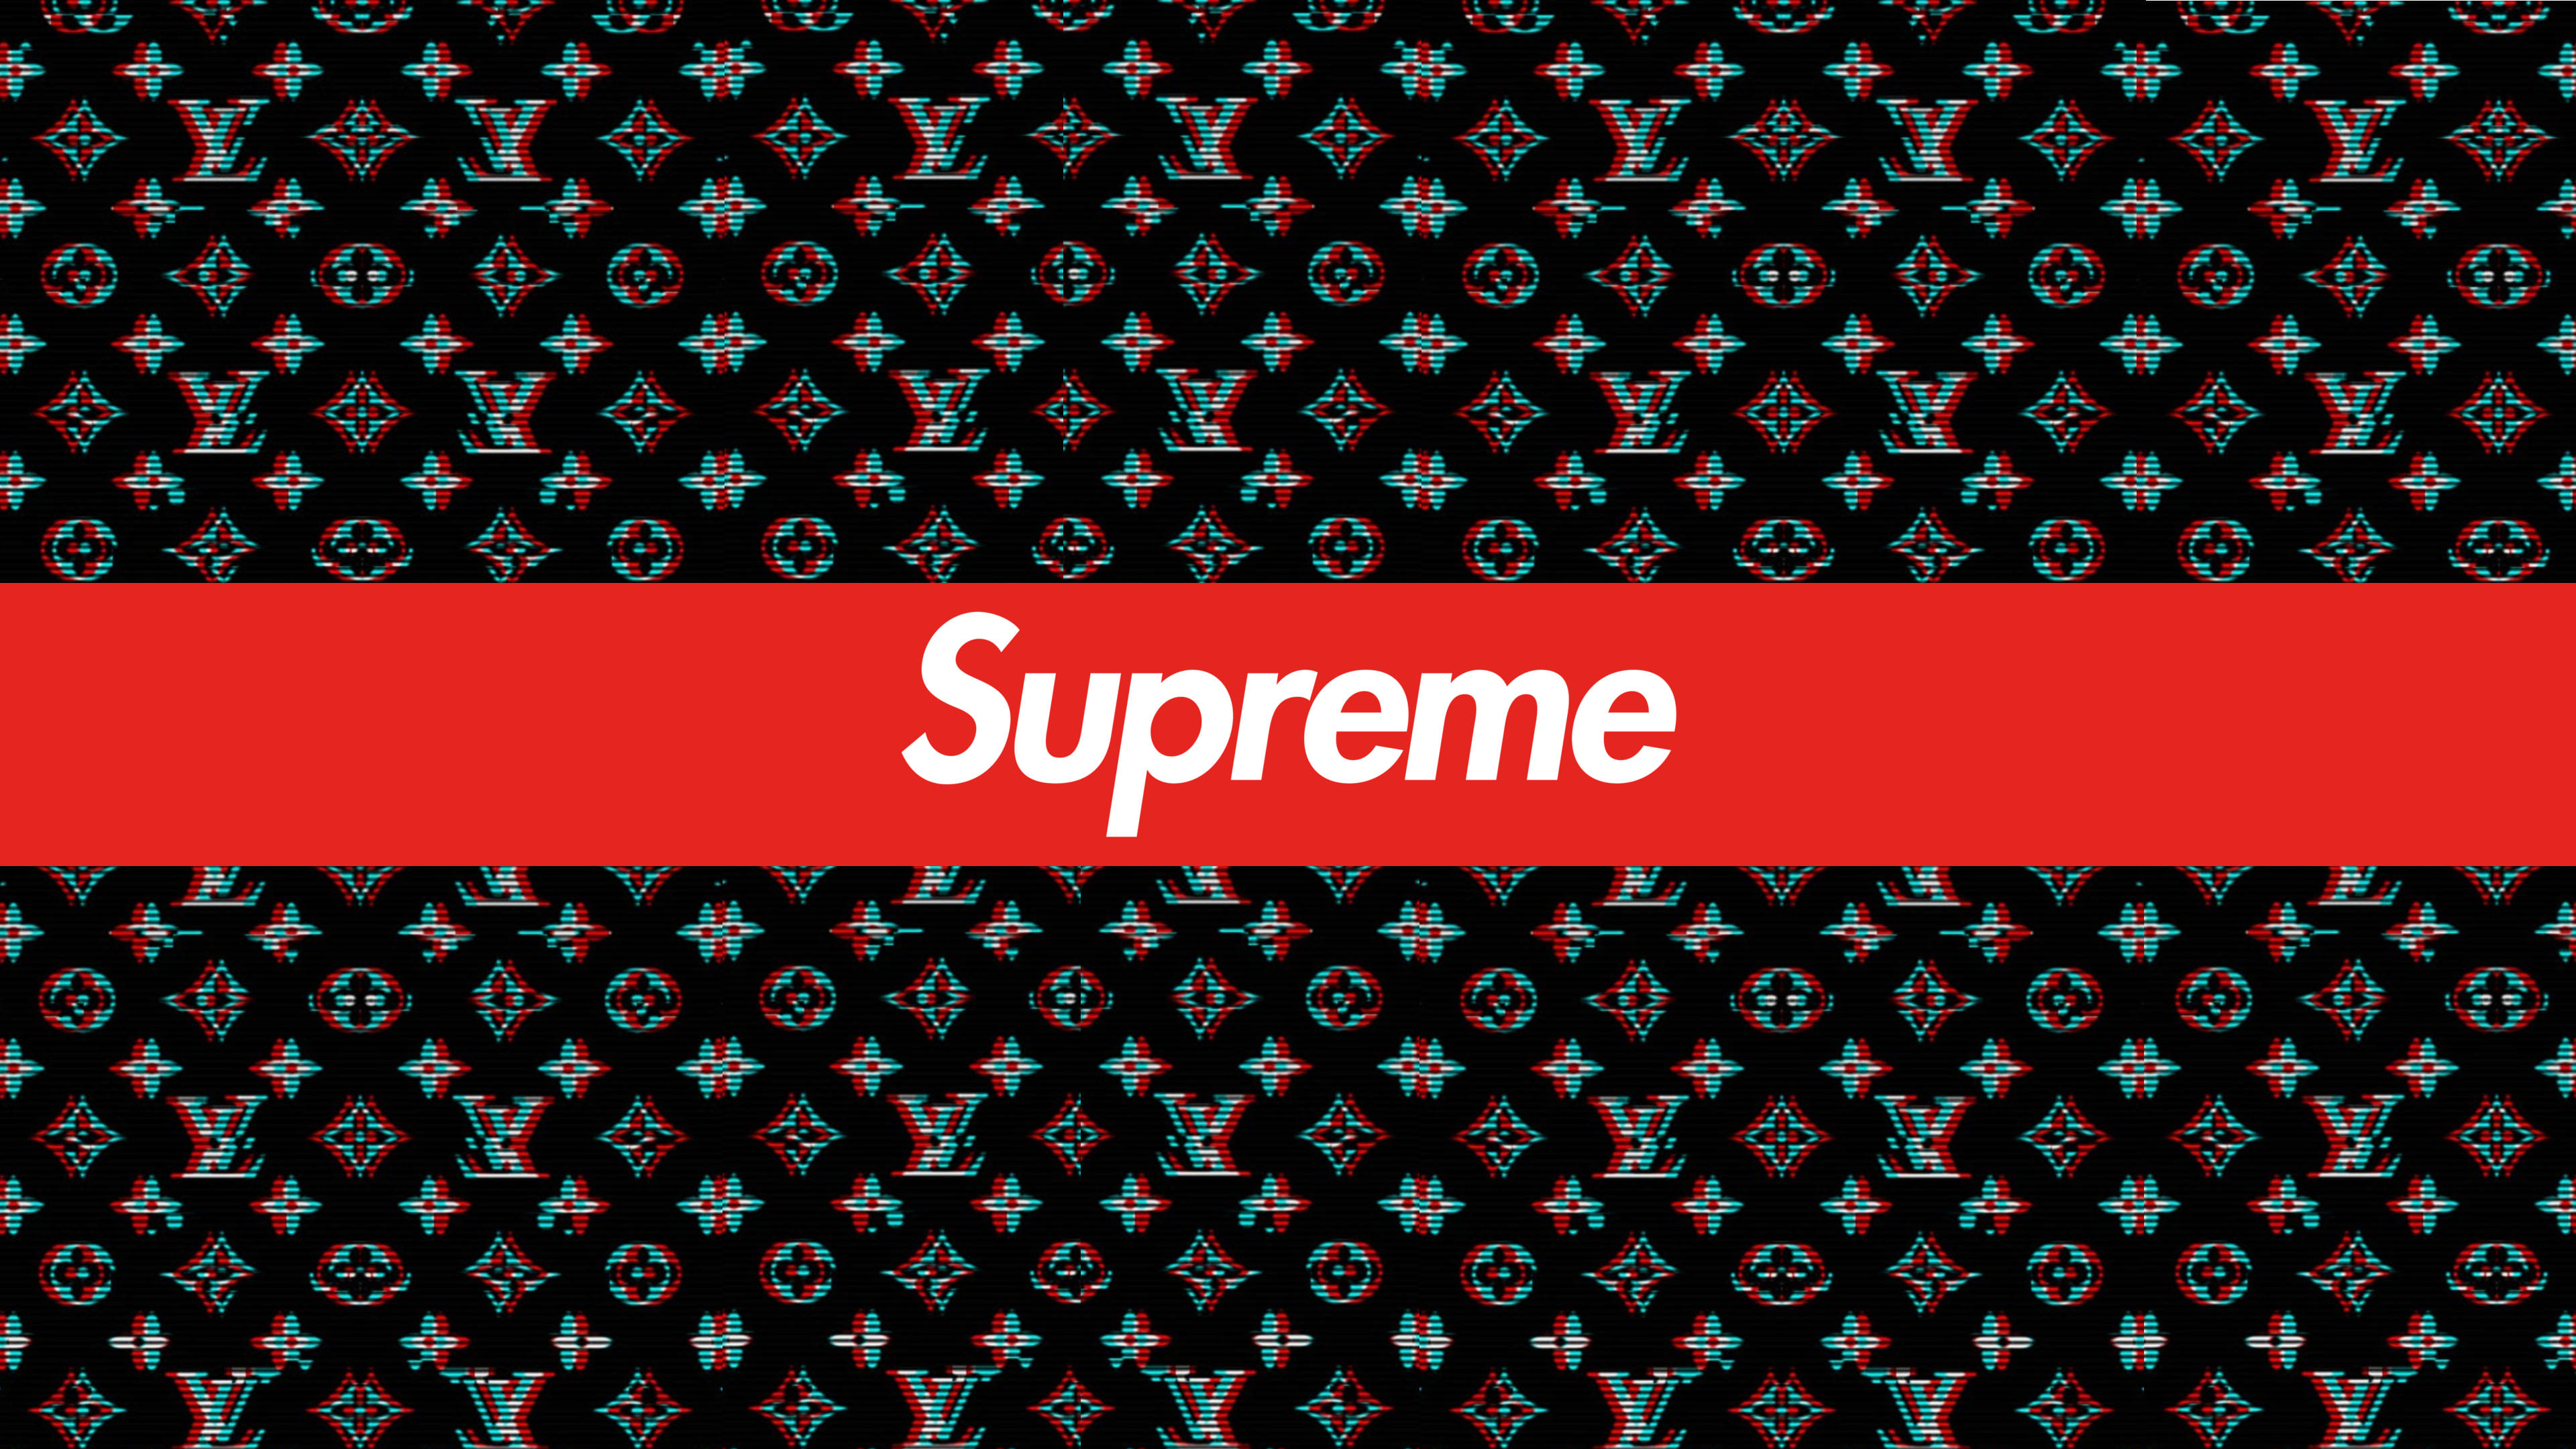 Louie Vuitton Wallpapers Cool Backgrounds Supreme 3840x2160 Download Hd Wallpaper Wallpapertip